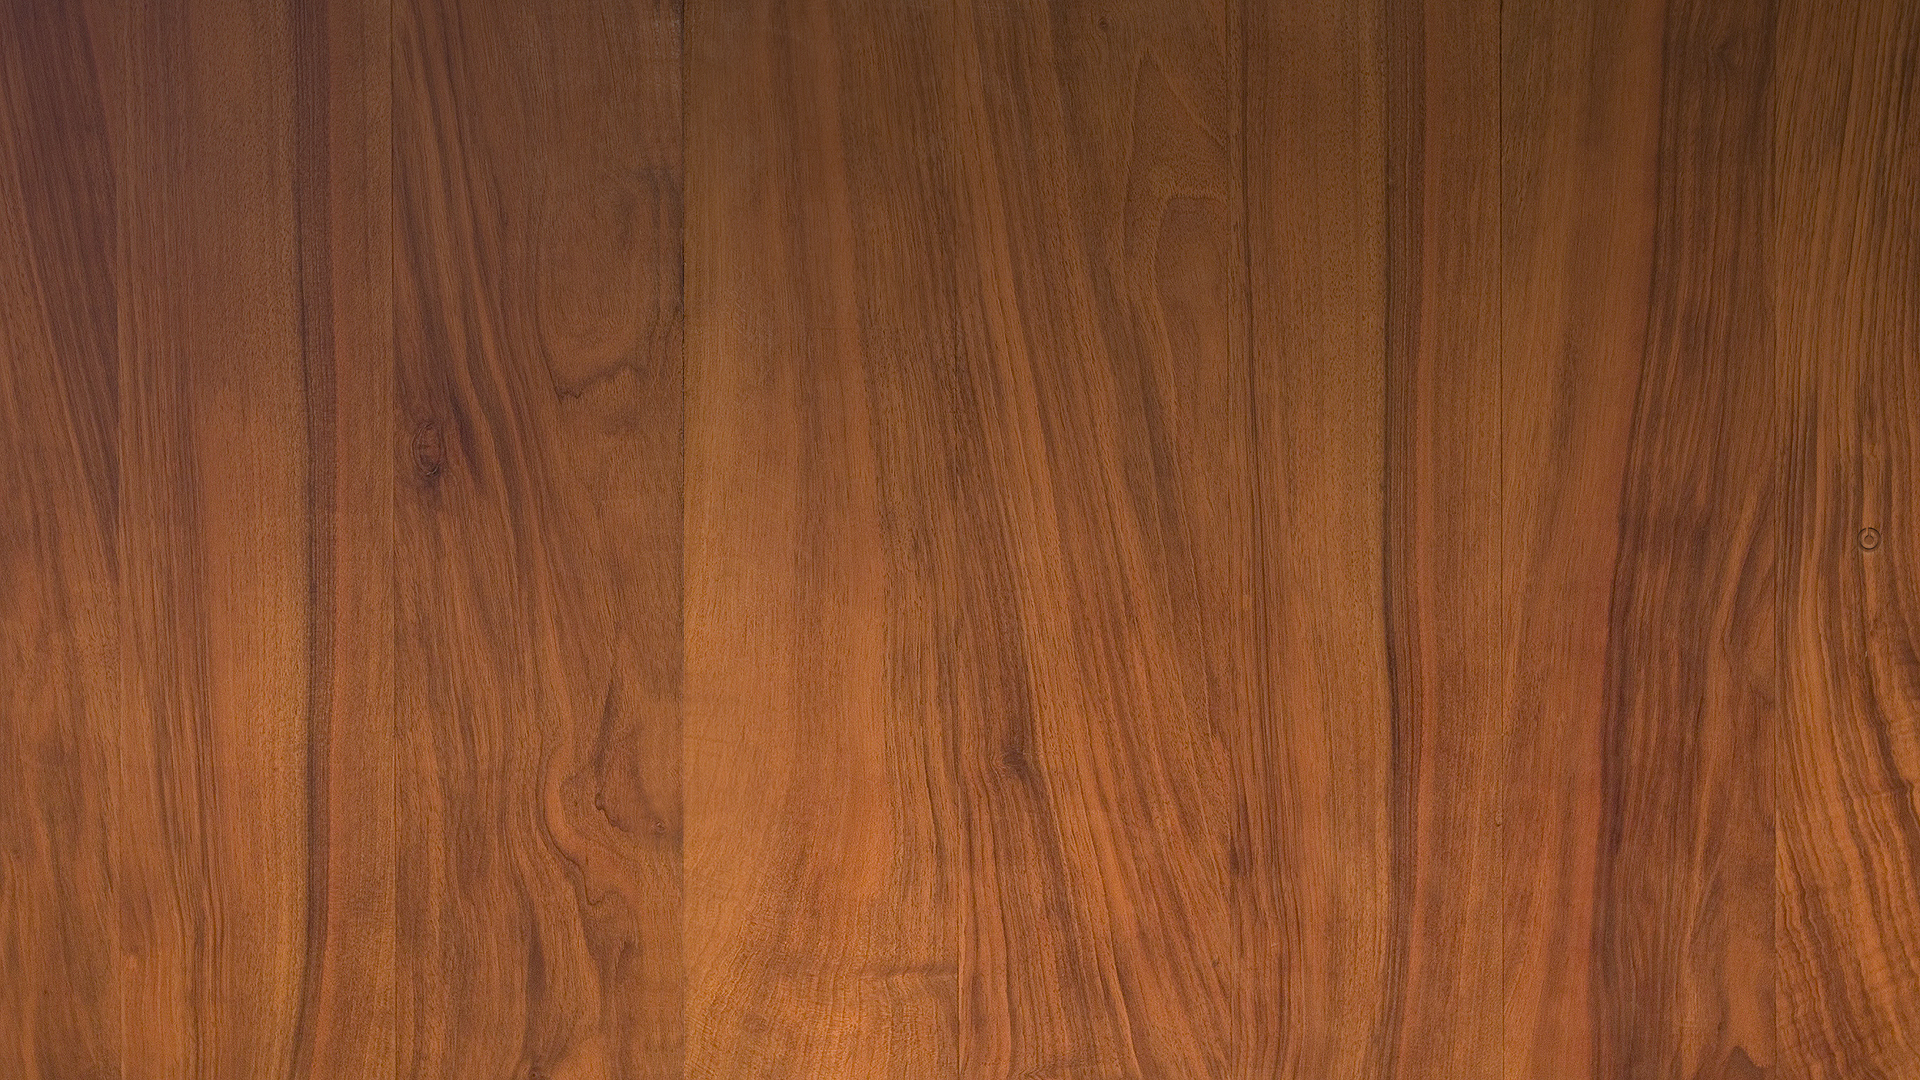 Wood HD Wallpaper Background Image 1920x1080 ID:379404 Wallpaper Abyss